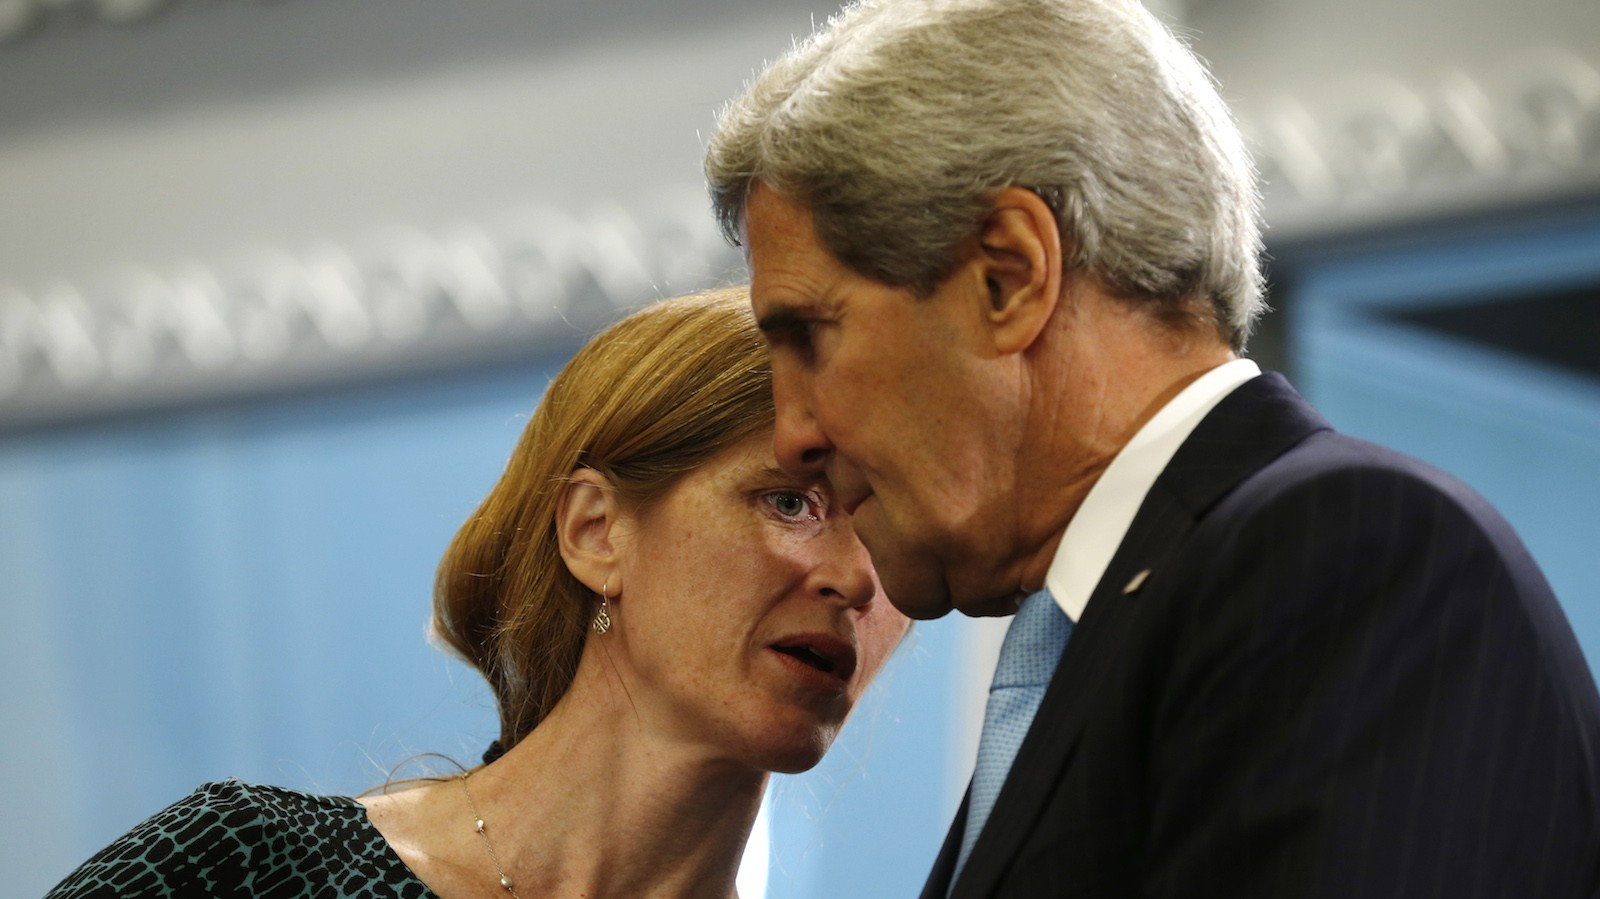 U.S. Ambassador to the United Nations Samantha Power (L) whispers to U.S. Secretary of State John Kerry during a meeting between U.S. President Barack Obama and Lebanon's President Michel Sleiman at the United Nations General Assembly in New York September 24, 2013.